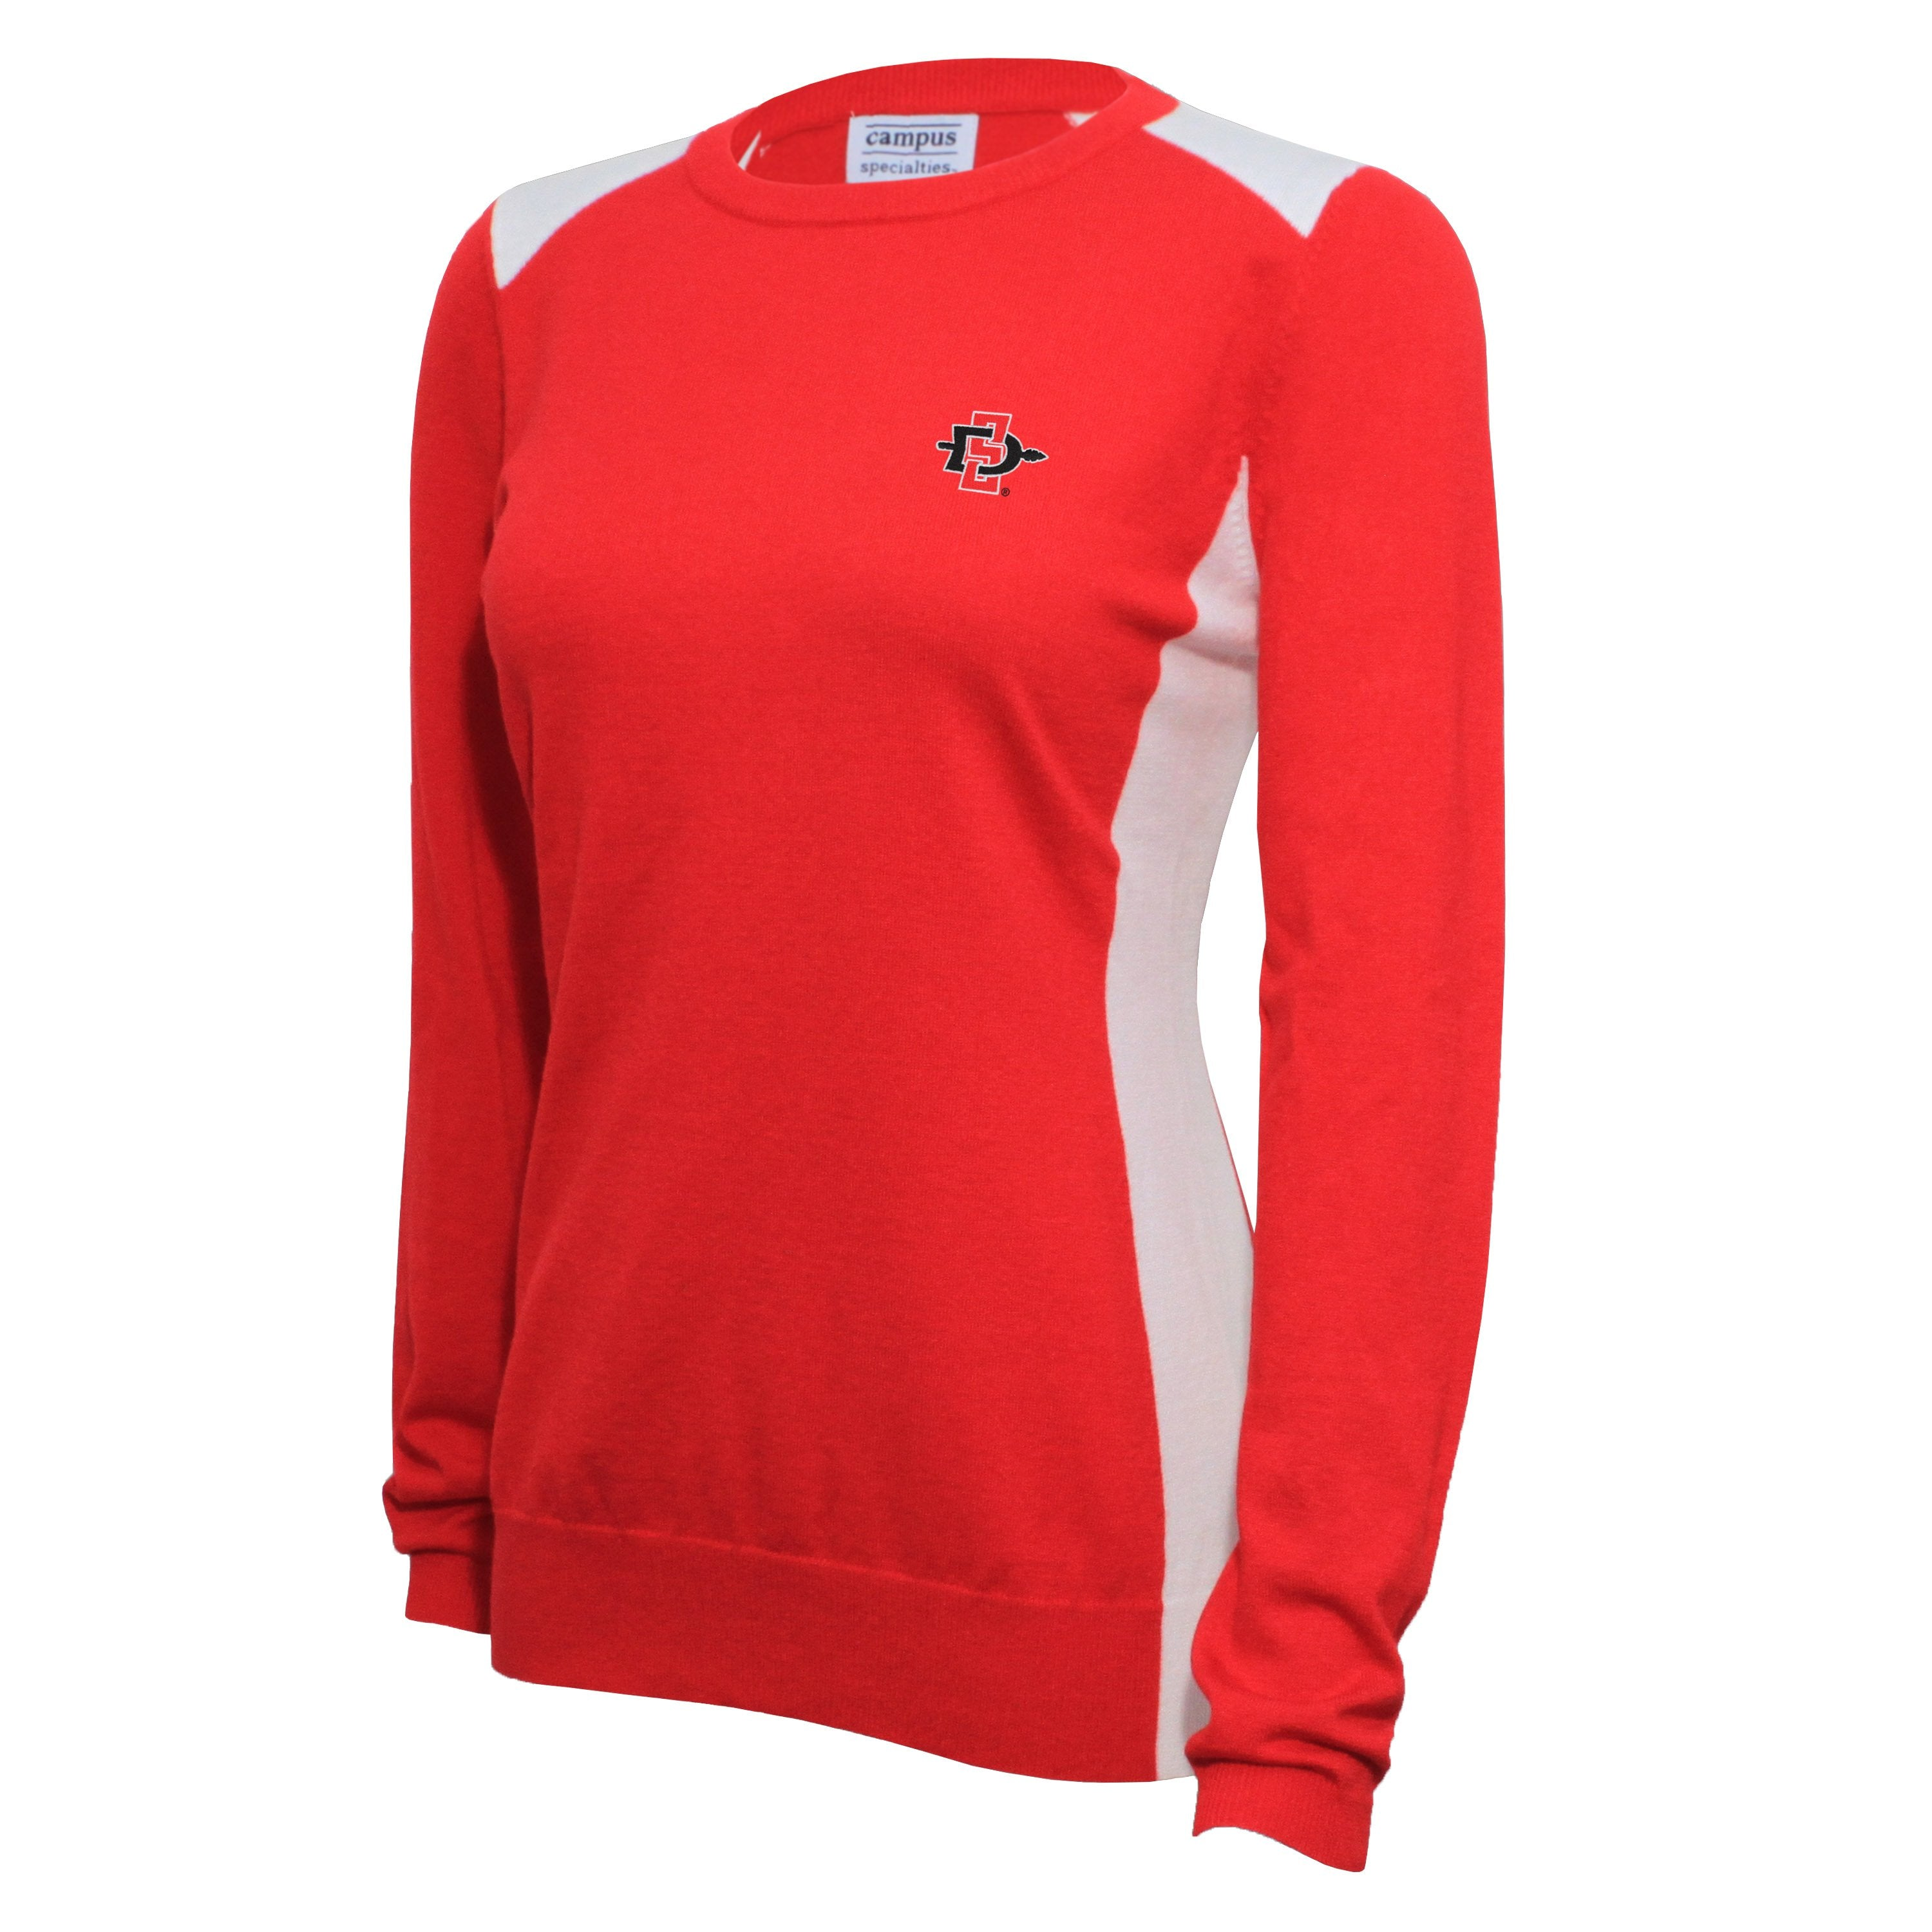 Campus Specialties San Diego State Women's Red Contrast Panel Sweater